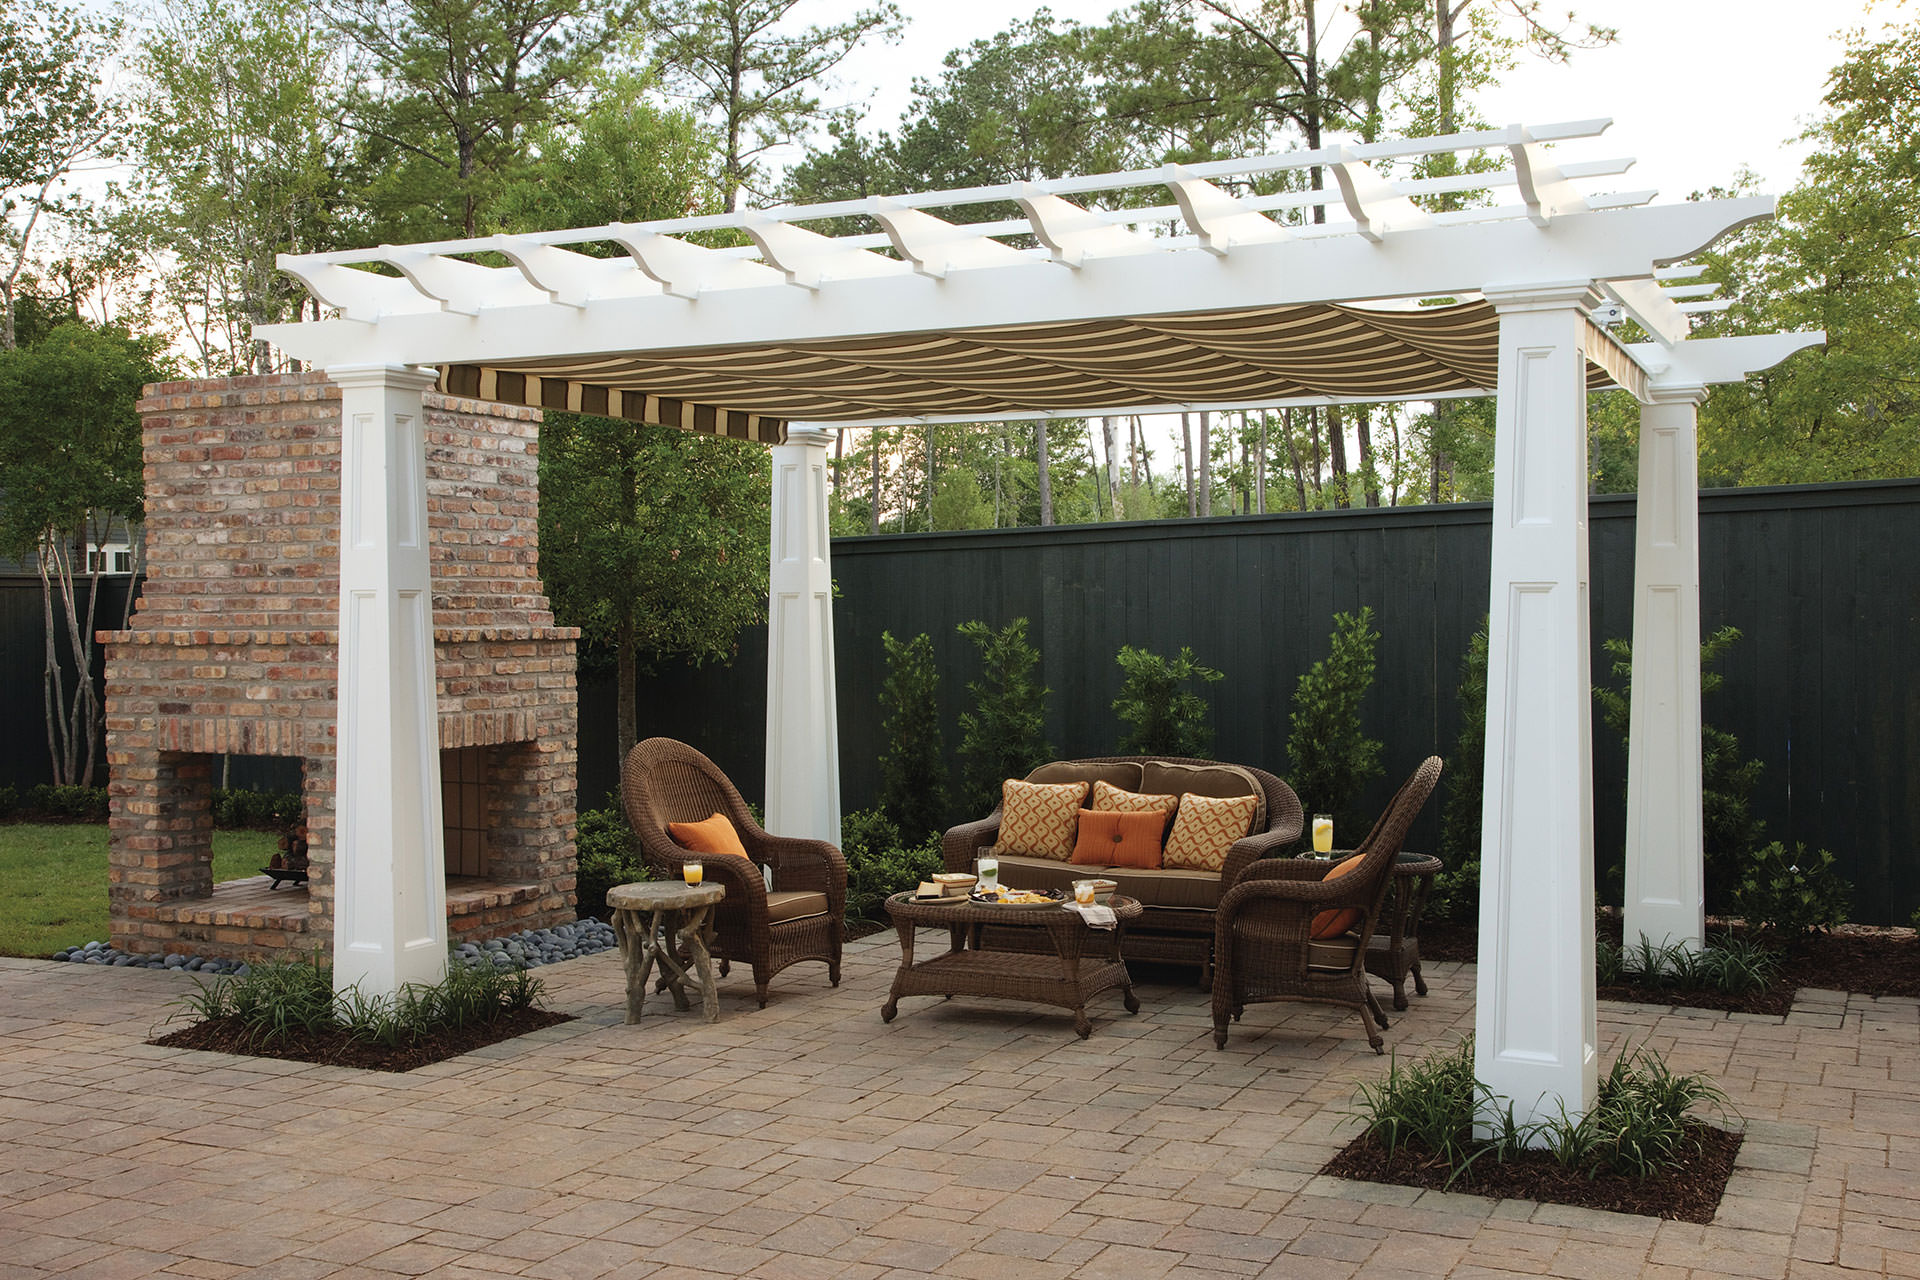 Pergola Shade: Pratical Solutions for Every Outdoor Space on Canvas Sun Shade Pergola id=35031